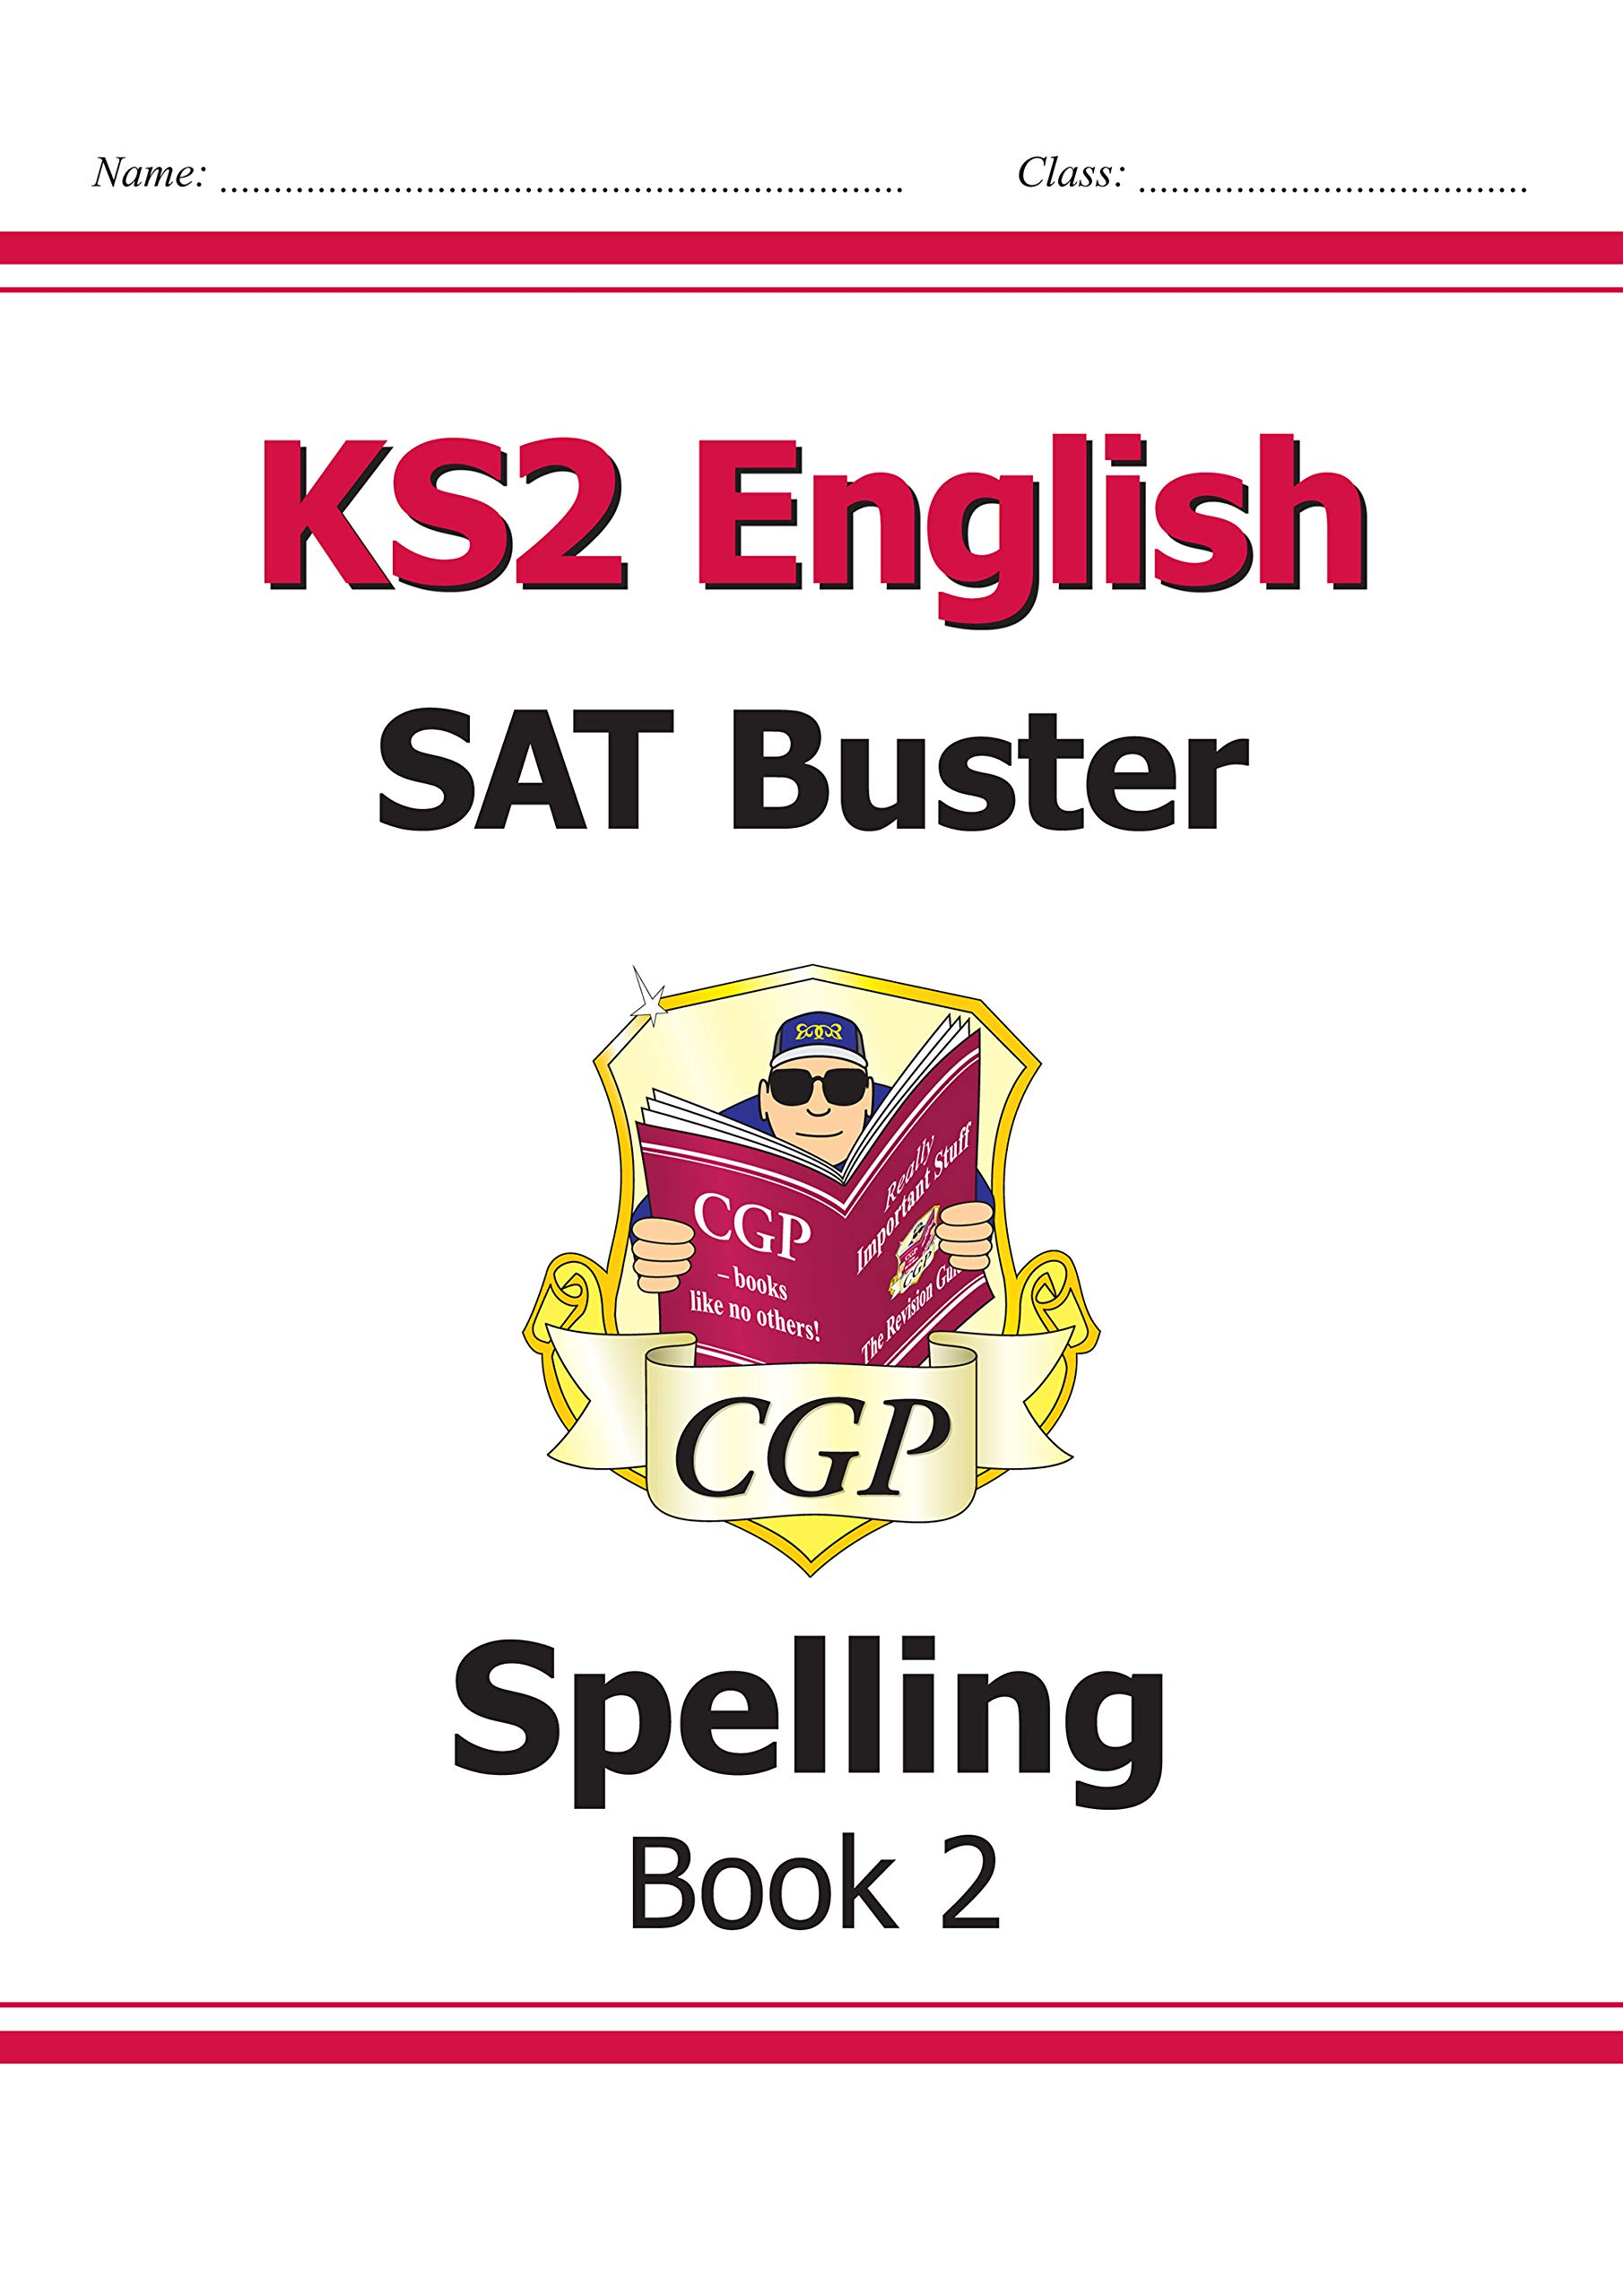 KS2 English SAT Buster   Spelling Book 2  For The 2020 Tests